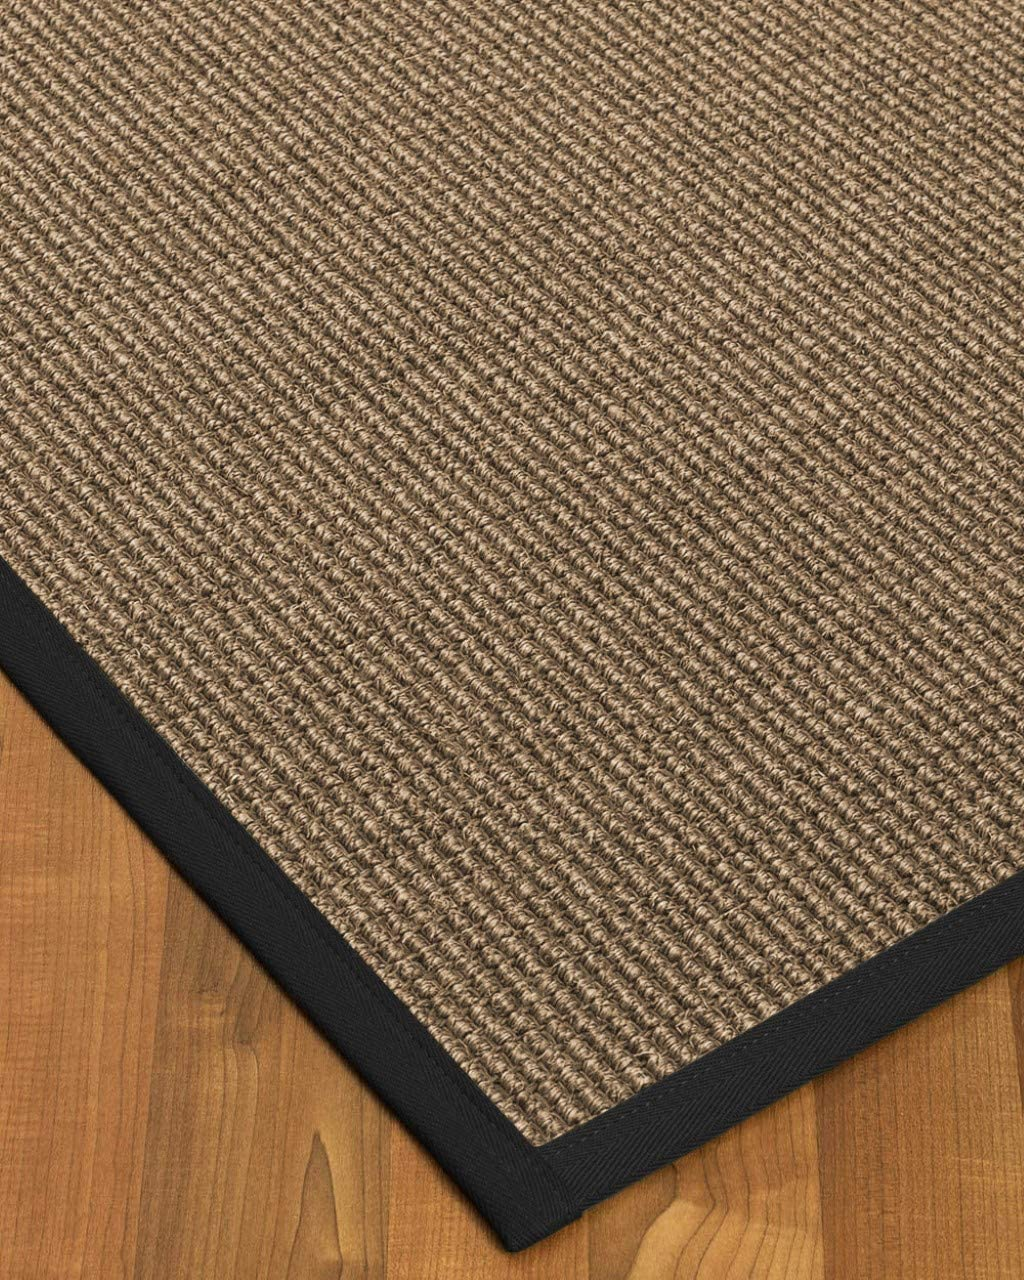 Natural Area Rugs 100 Natural Fiber Handmade Sandstone, Brown Sisal Rug, 2 x 3 Black Border